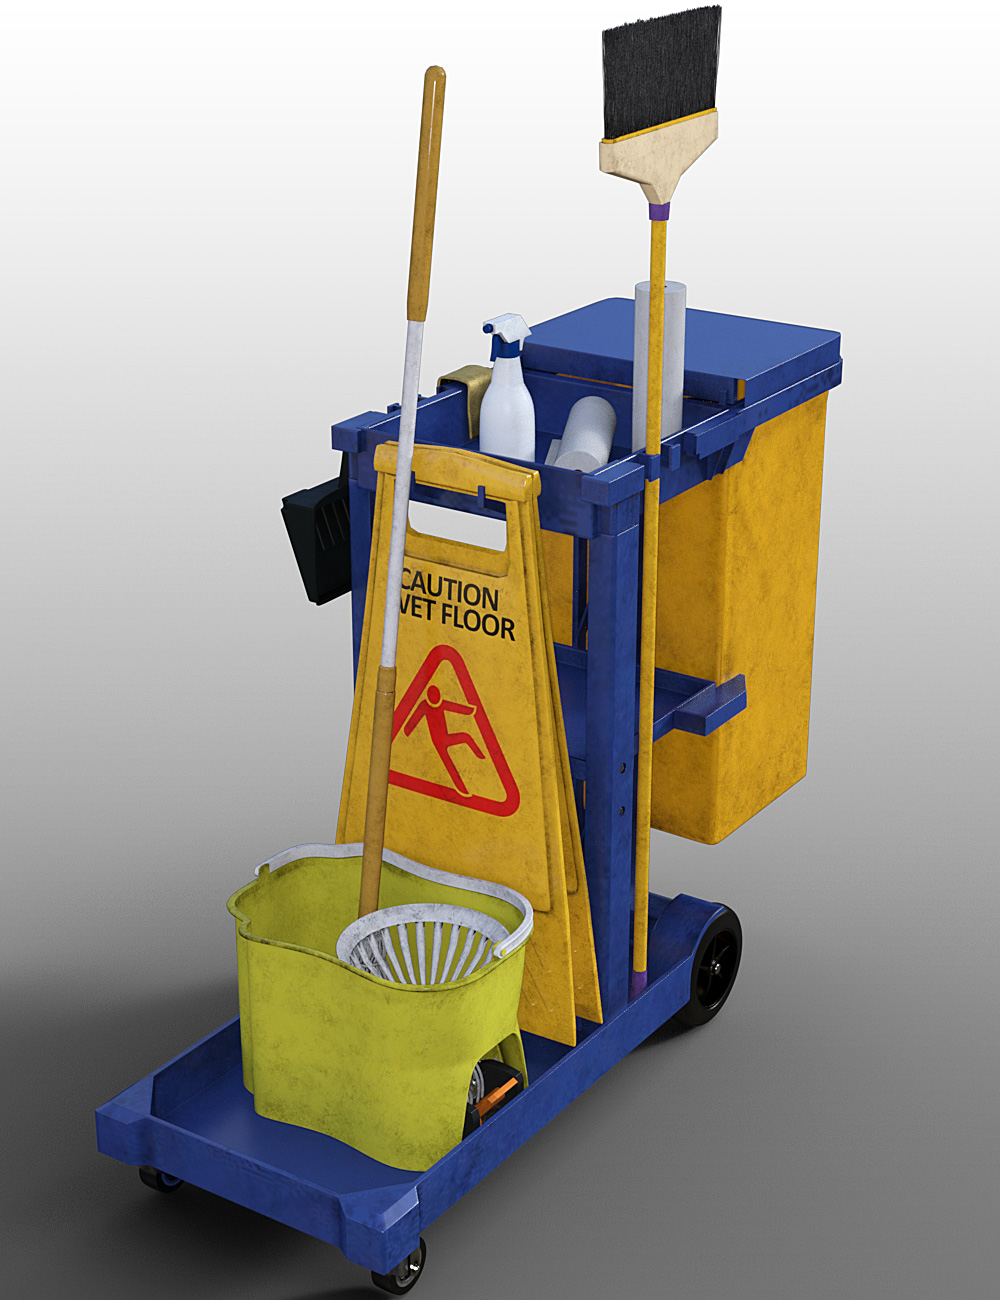 Commercial Cleaning Supplies by: , 3D Models by Daz 3D